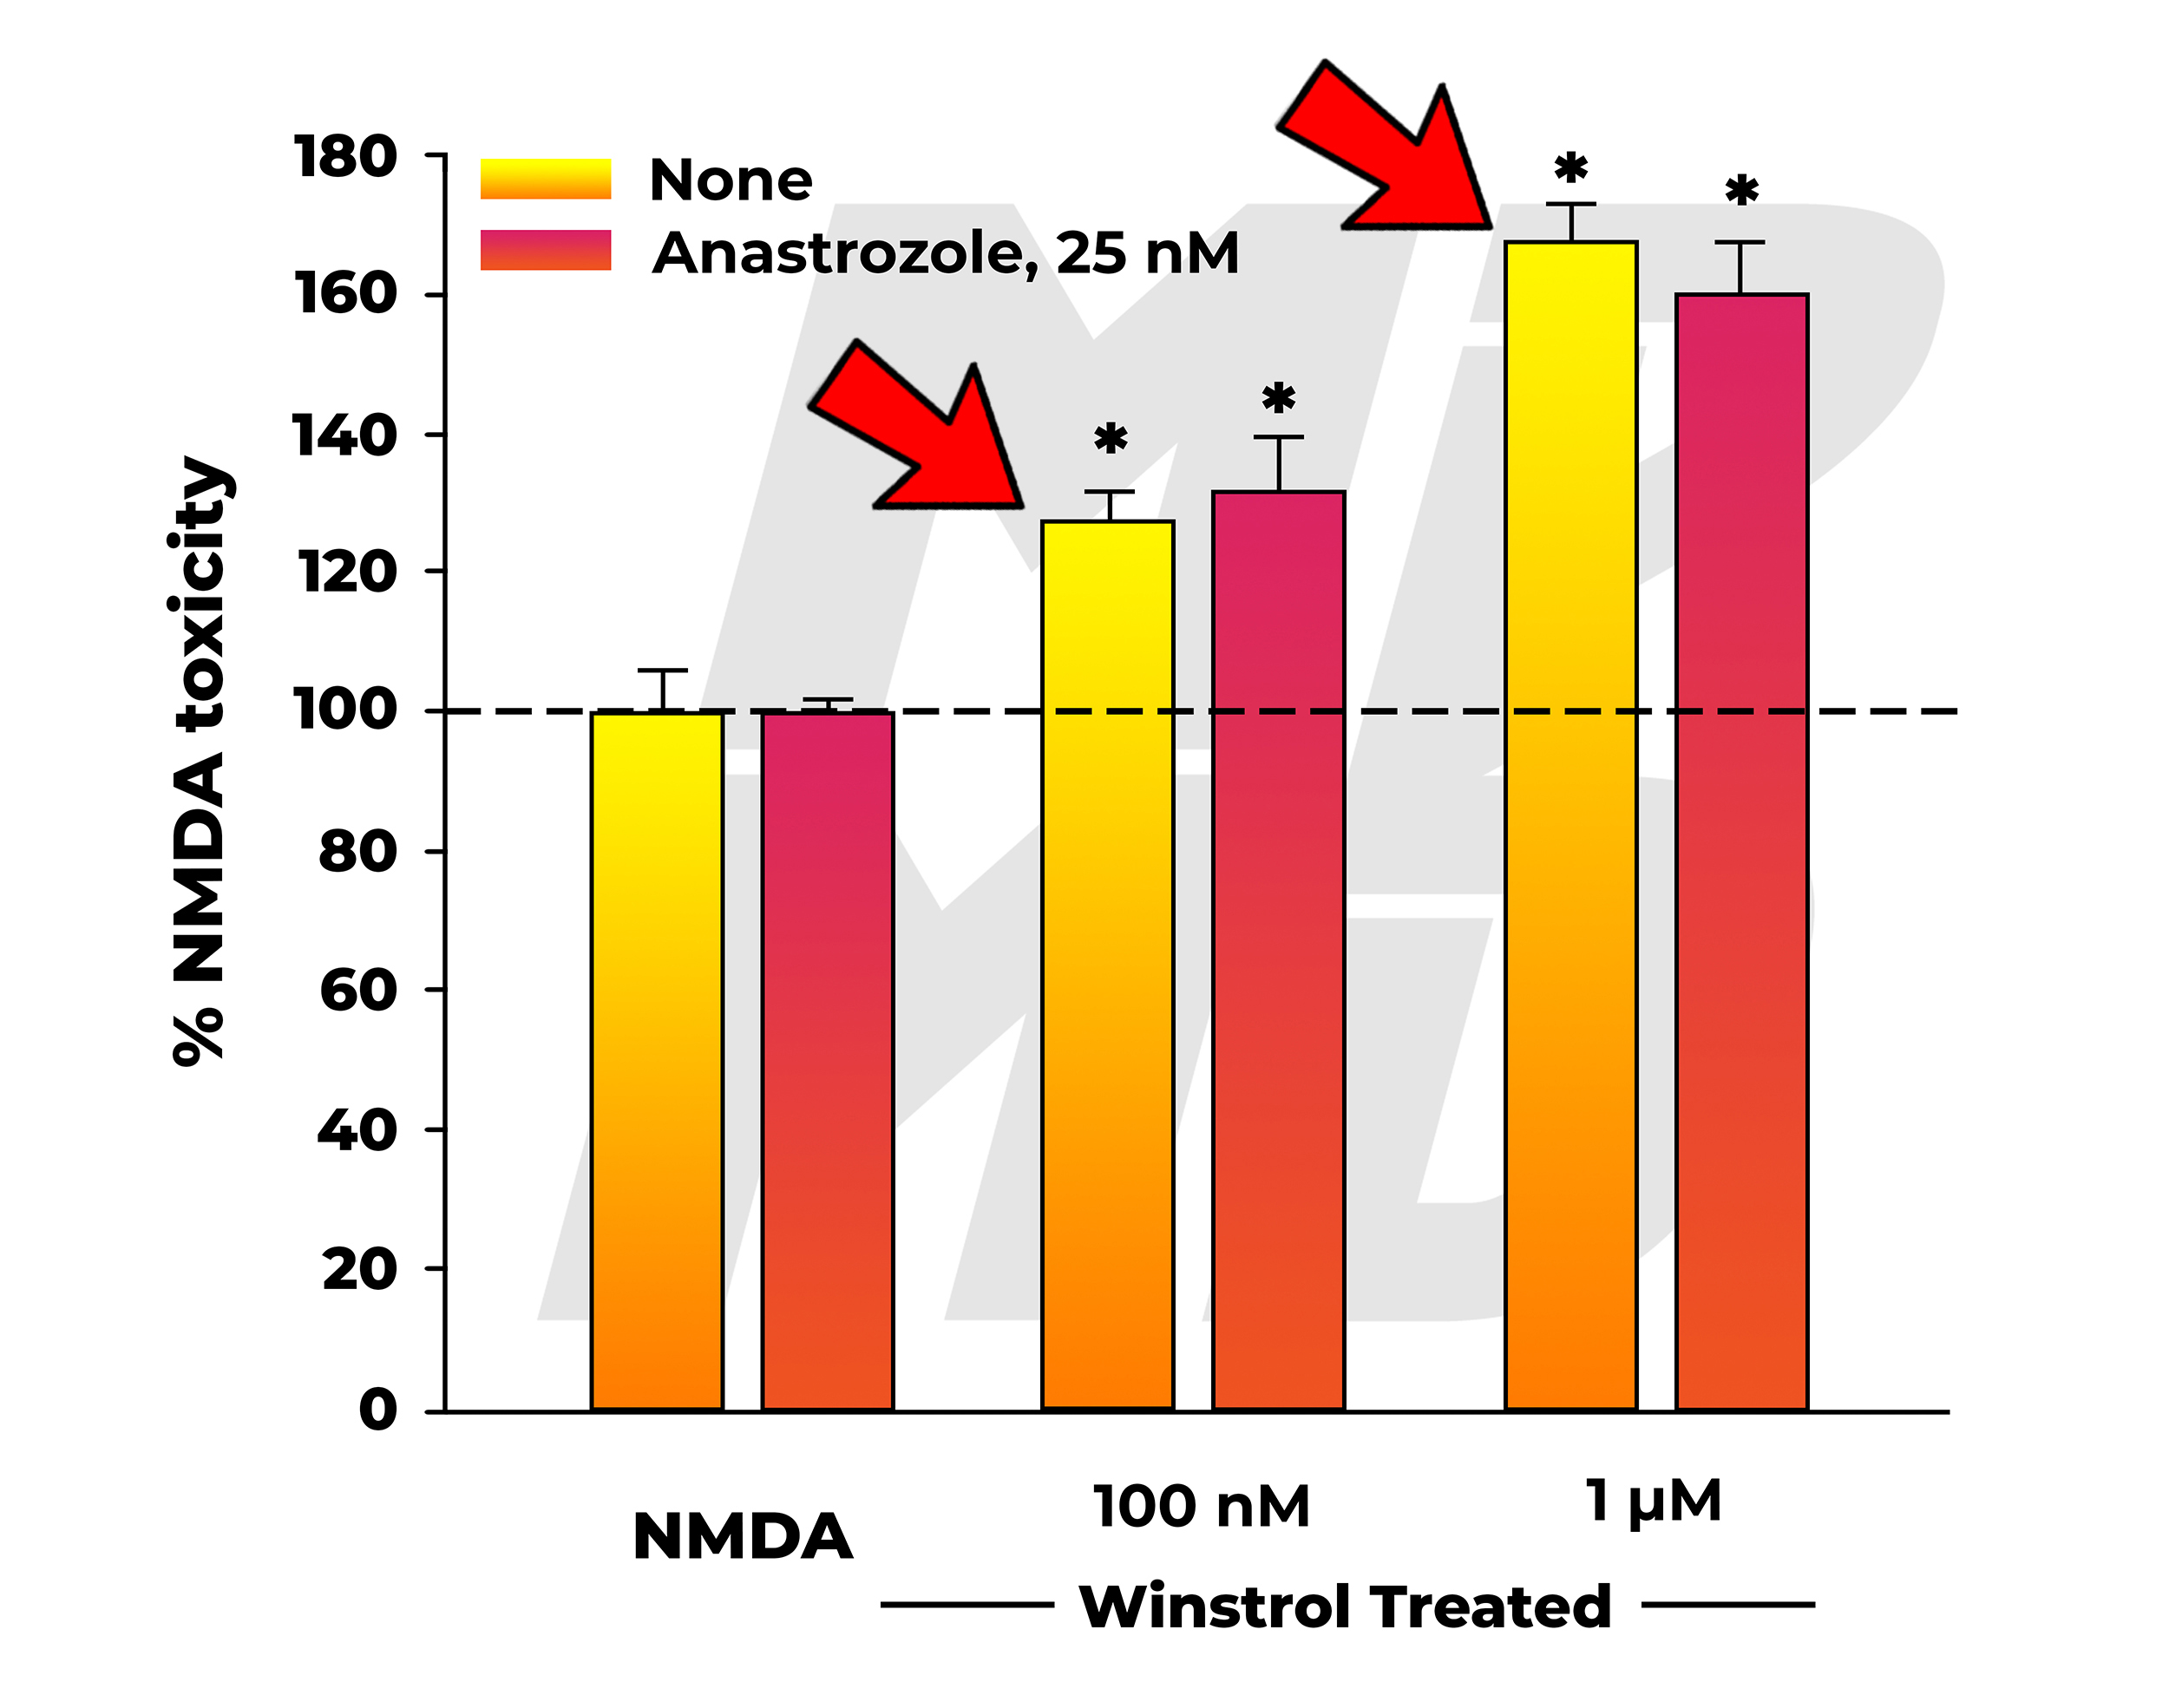 NMDA Neurotoxicity In Winstrol (Stanozolol) Treated Group Co-Administered Nothing, Or The Aromatase Inhibitor Arimidex (Anastrozole) - Neurotoxicity With And Without Arimidex Pointed Out